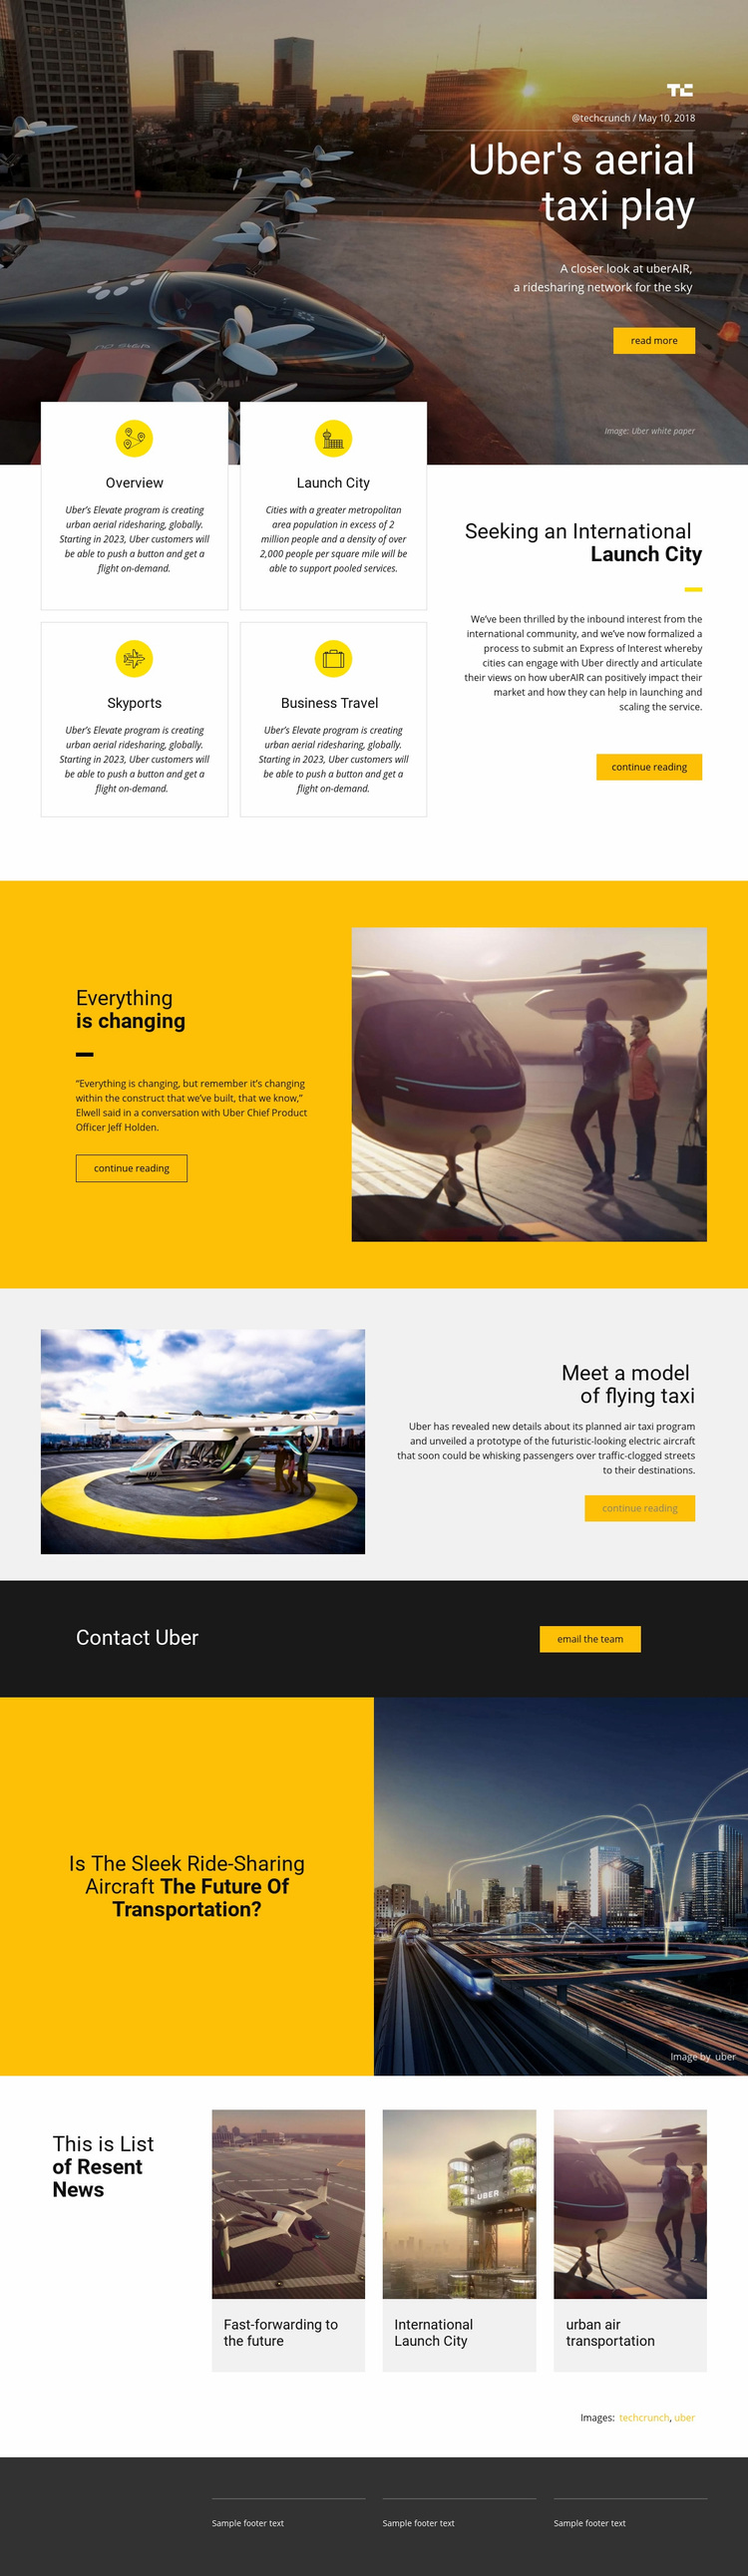 Uber's Aerial Taxi Play Web Page Designer